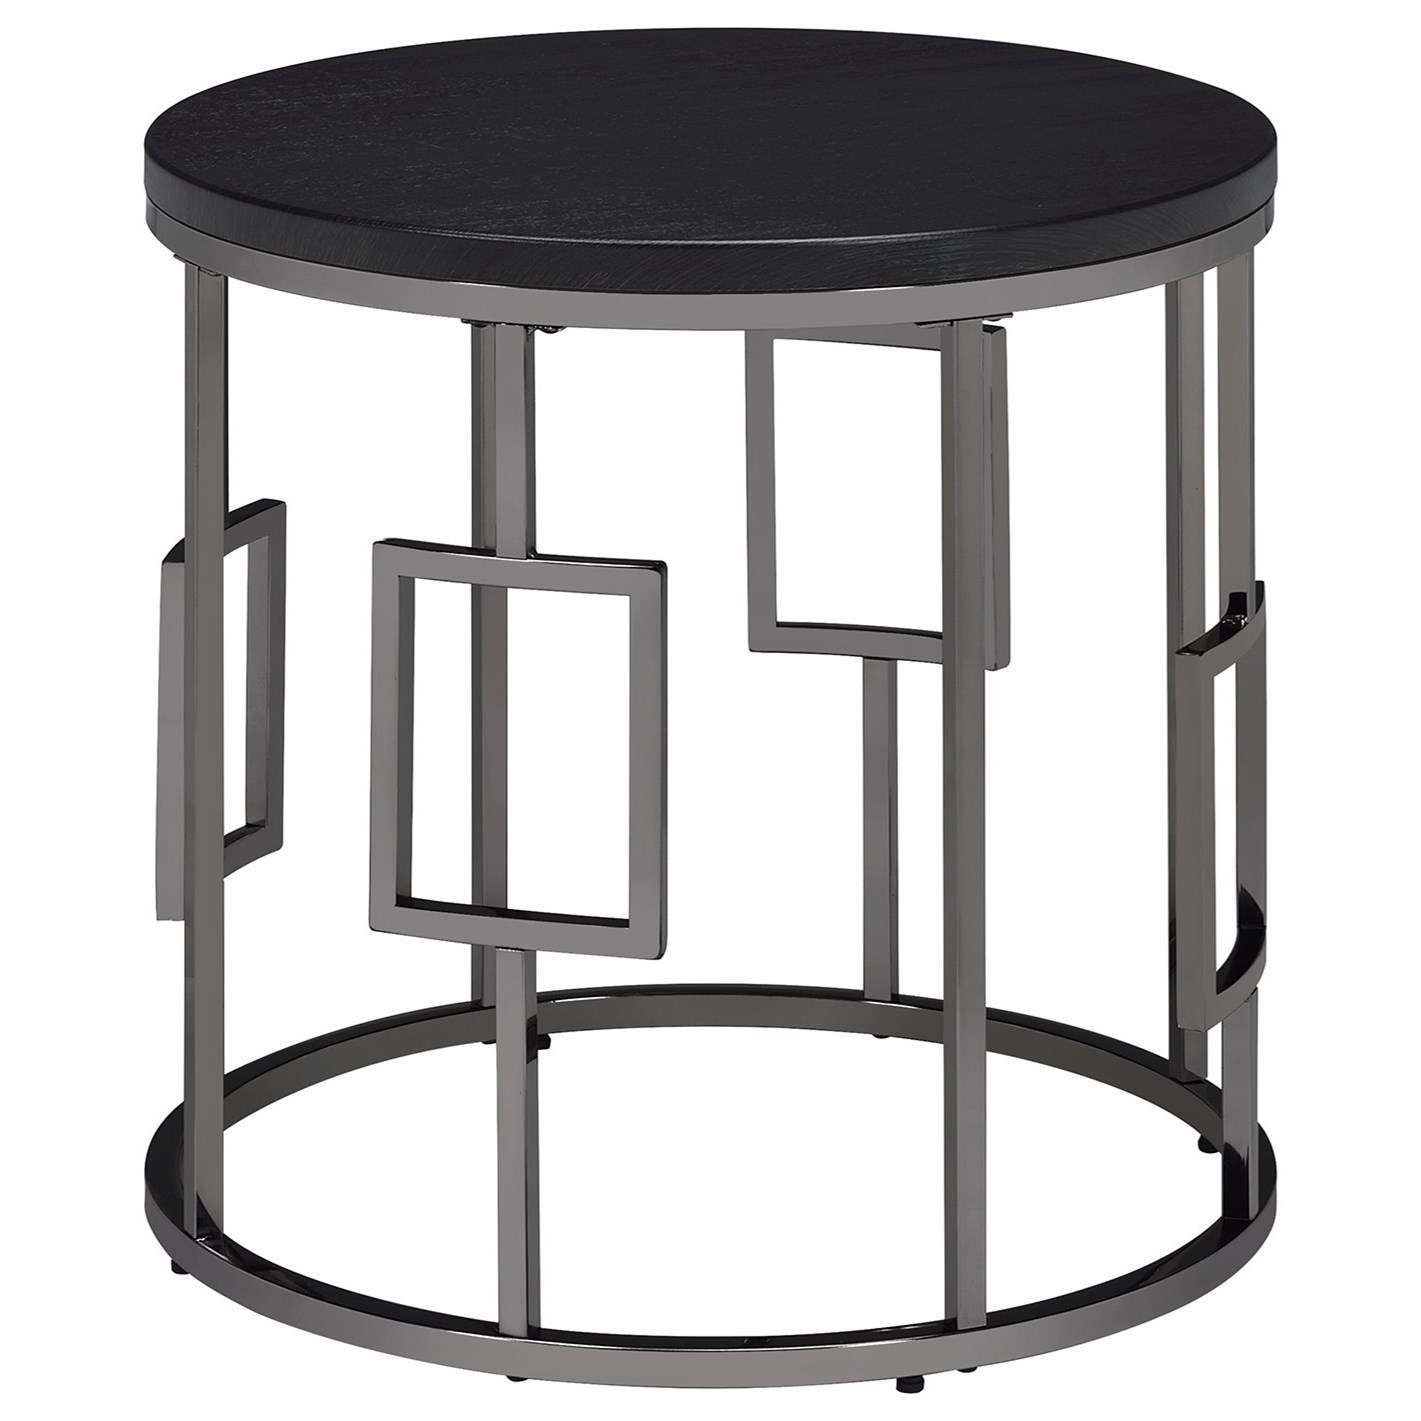 Ester Round End Table by Elements International at Sam Levitz Furniture